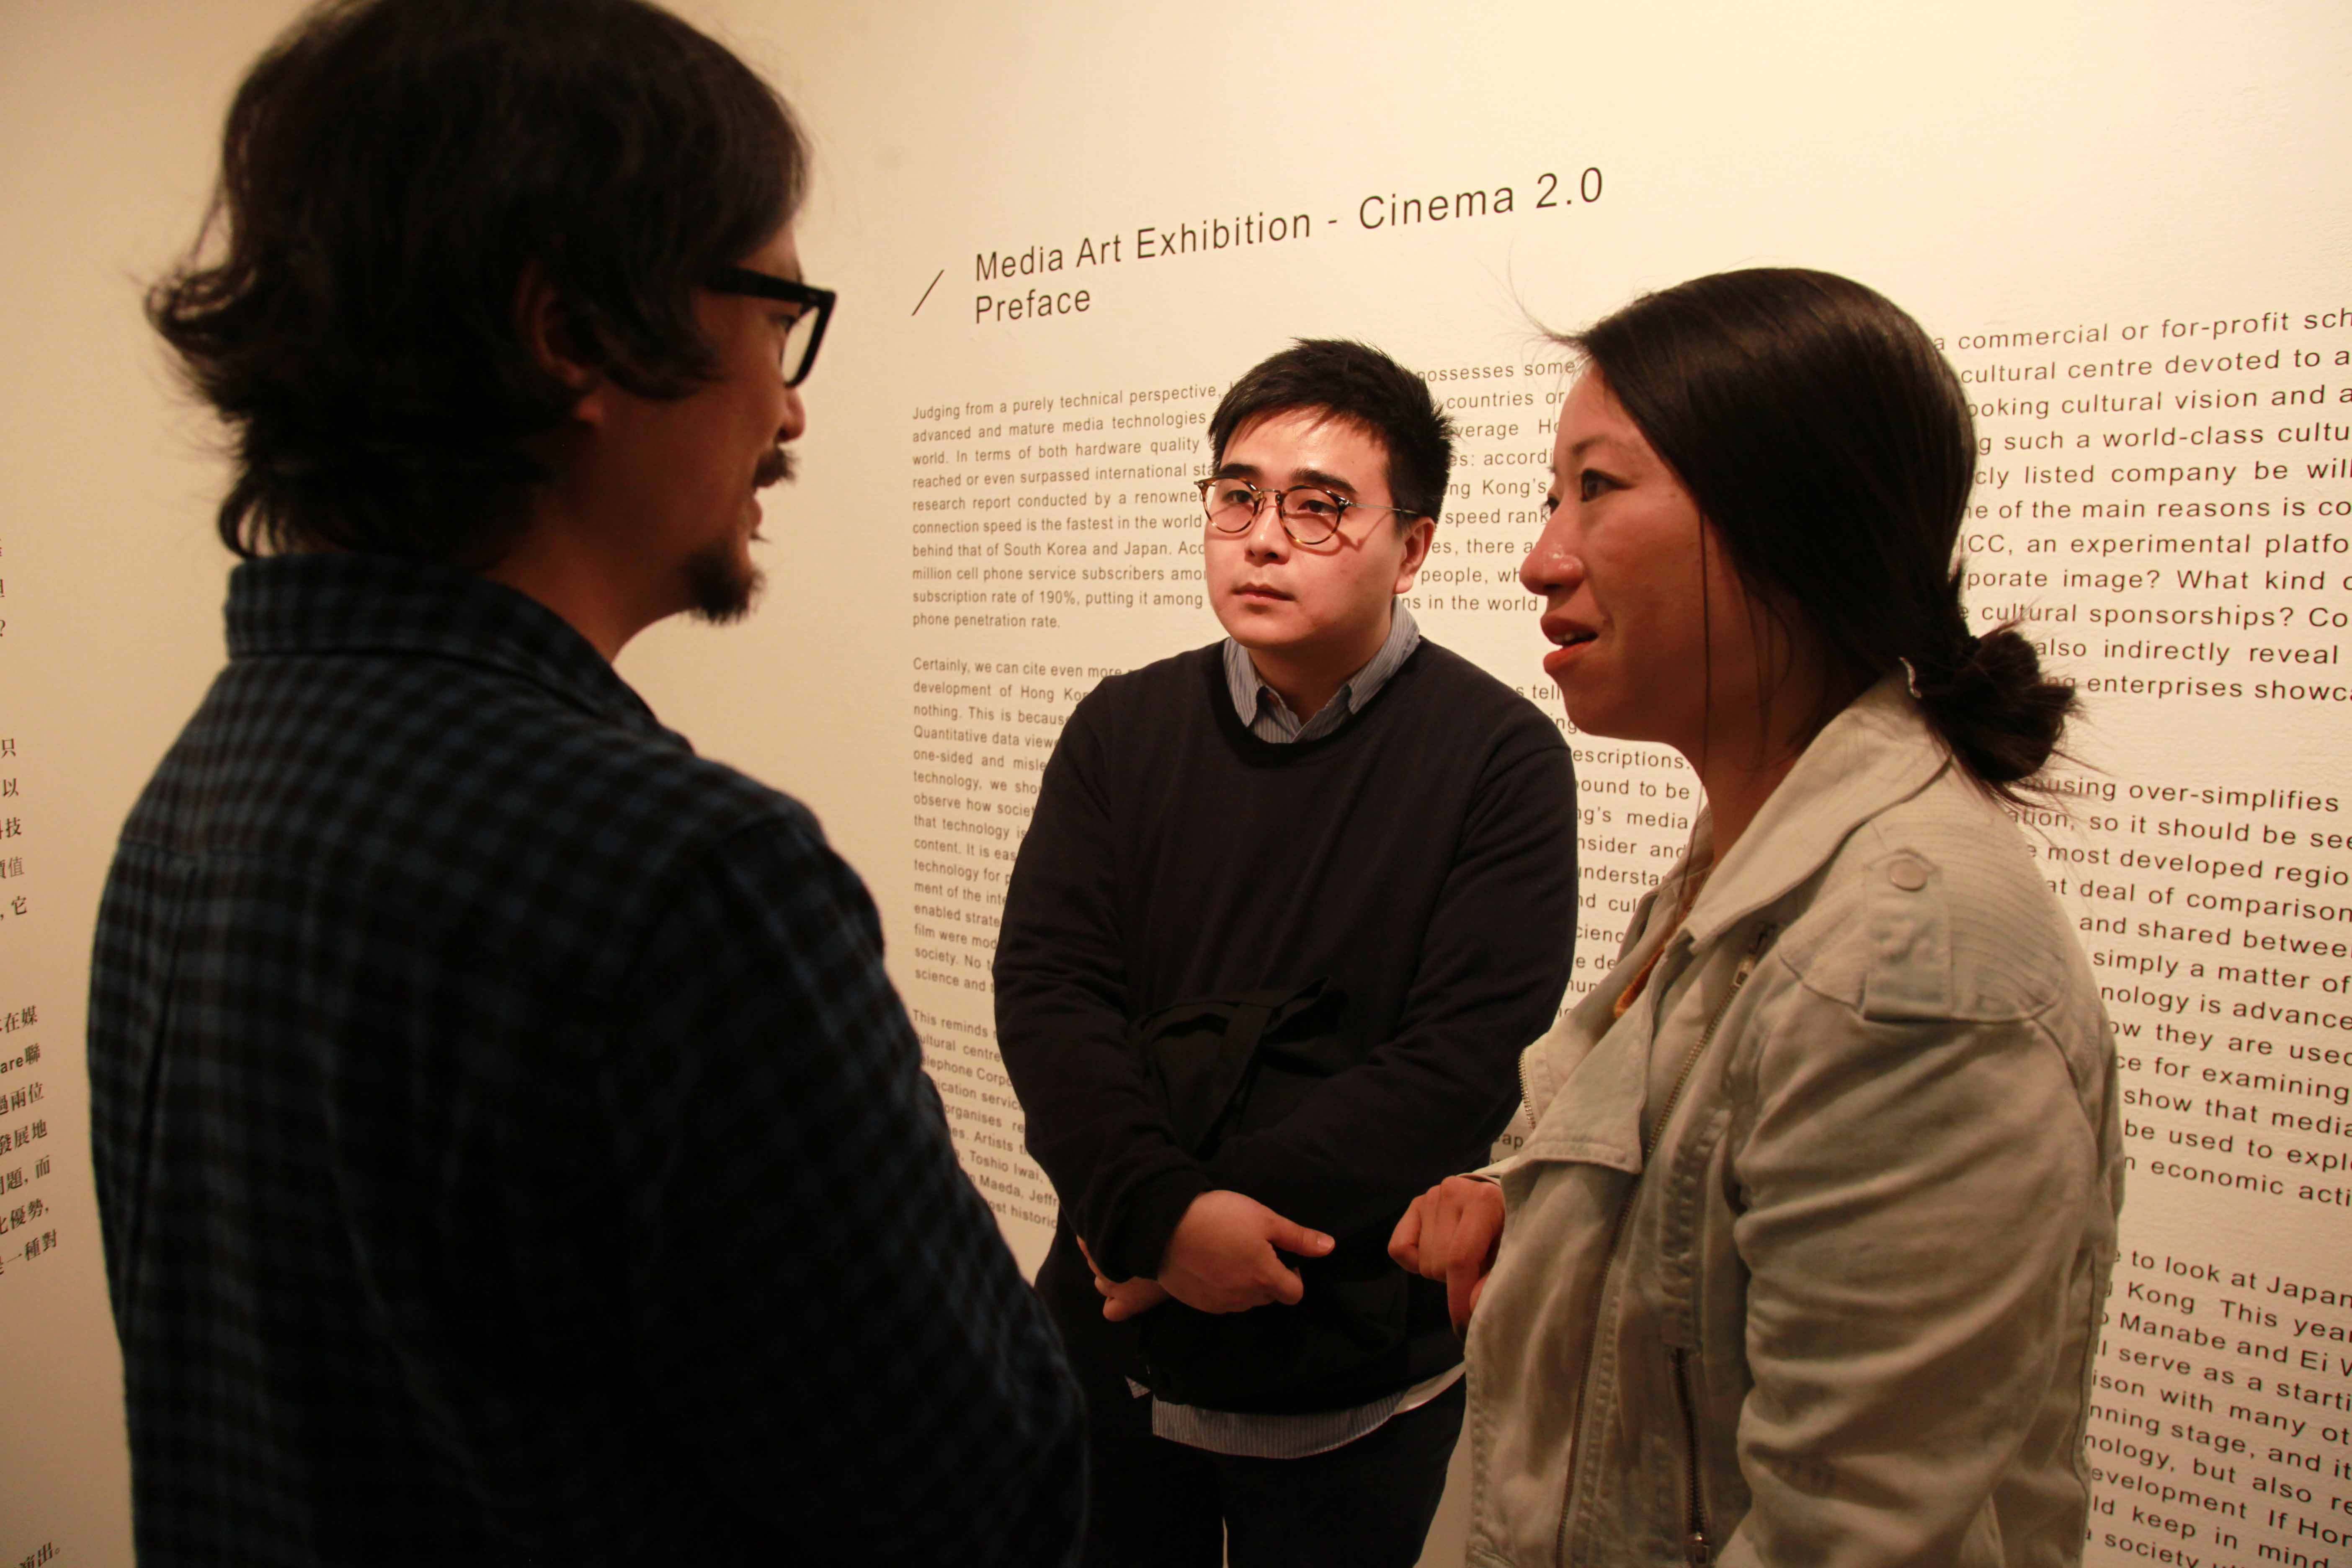 Daito Manabe was having dialogue with Jessey Tsang, one of the independent filmmakers in Hong Kong.